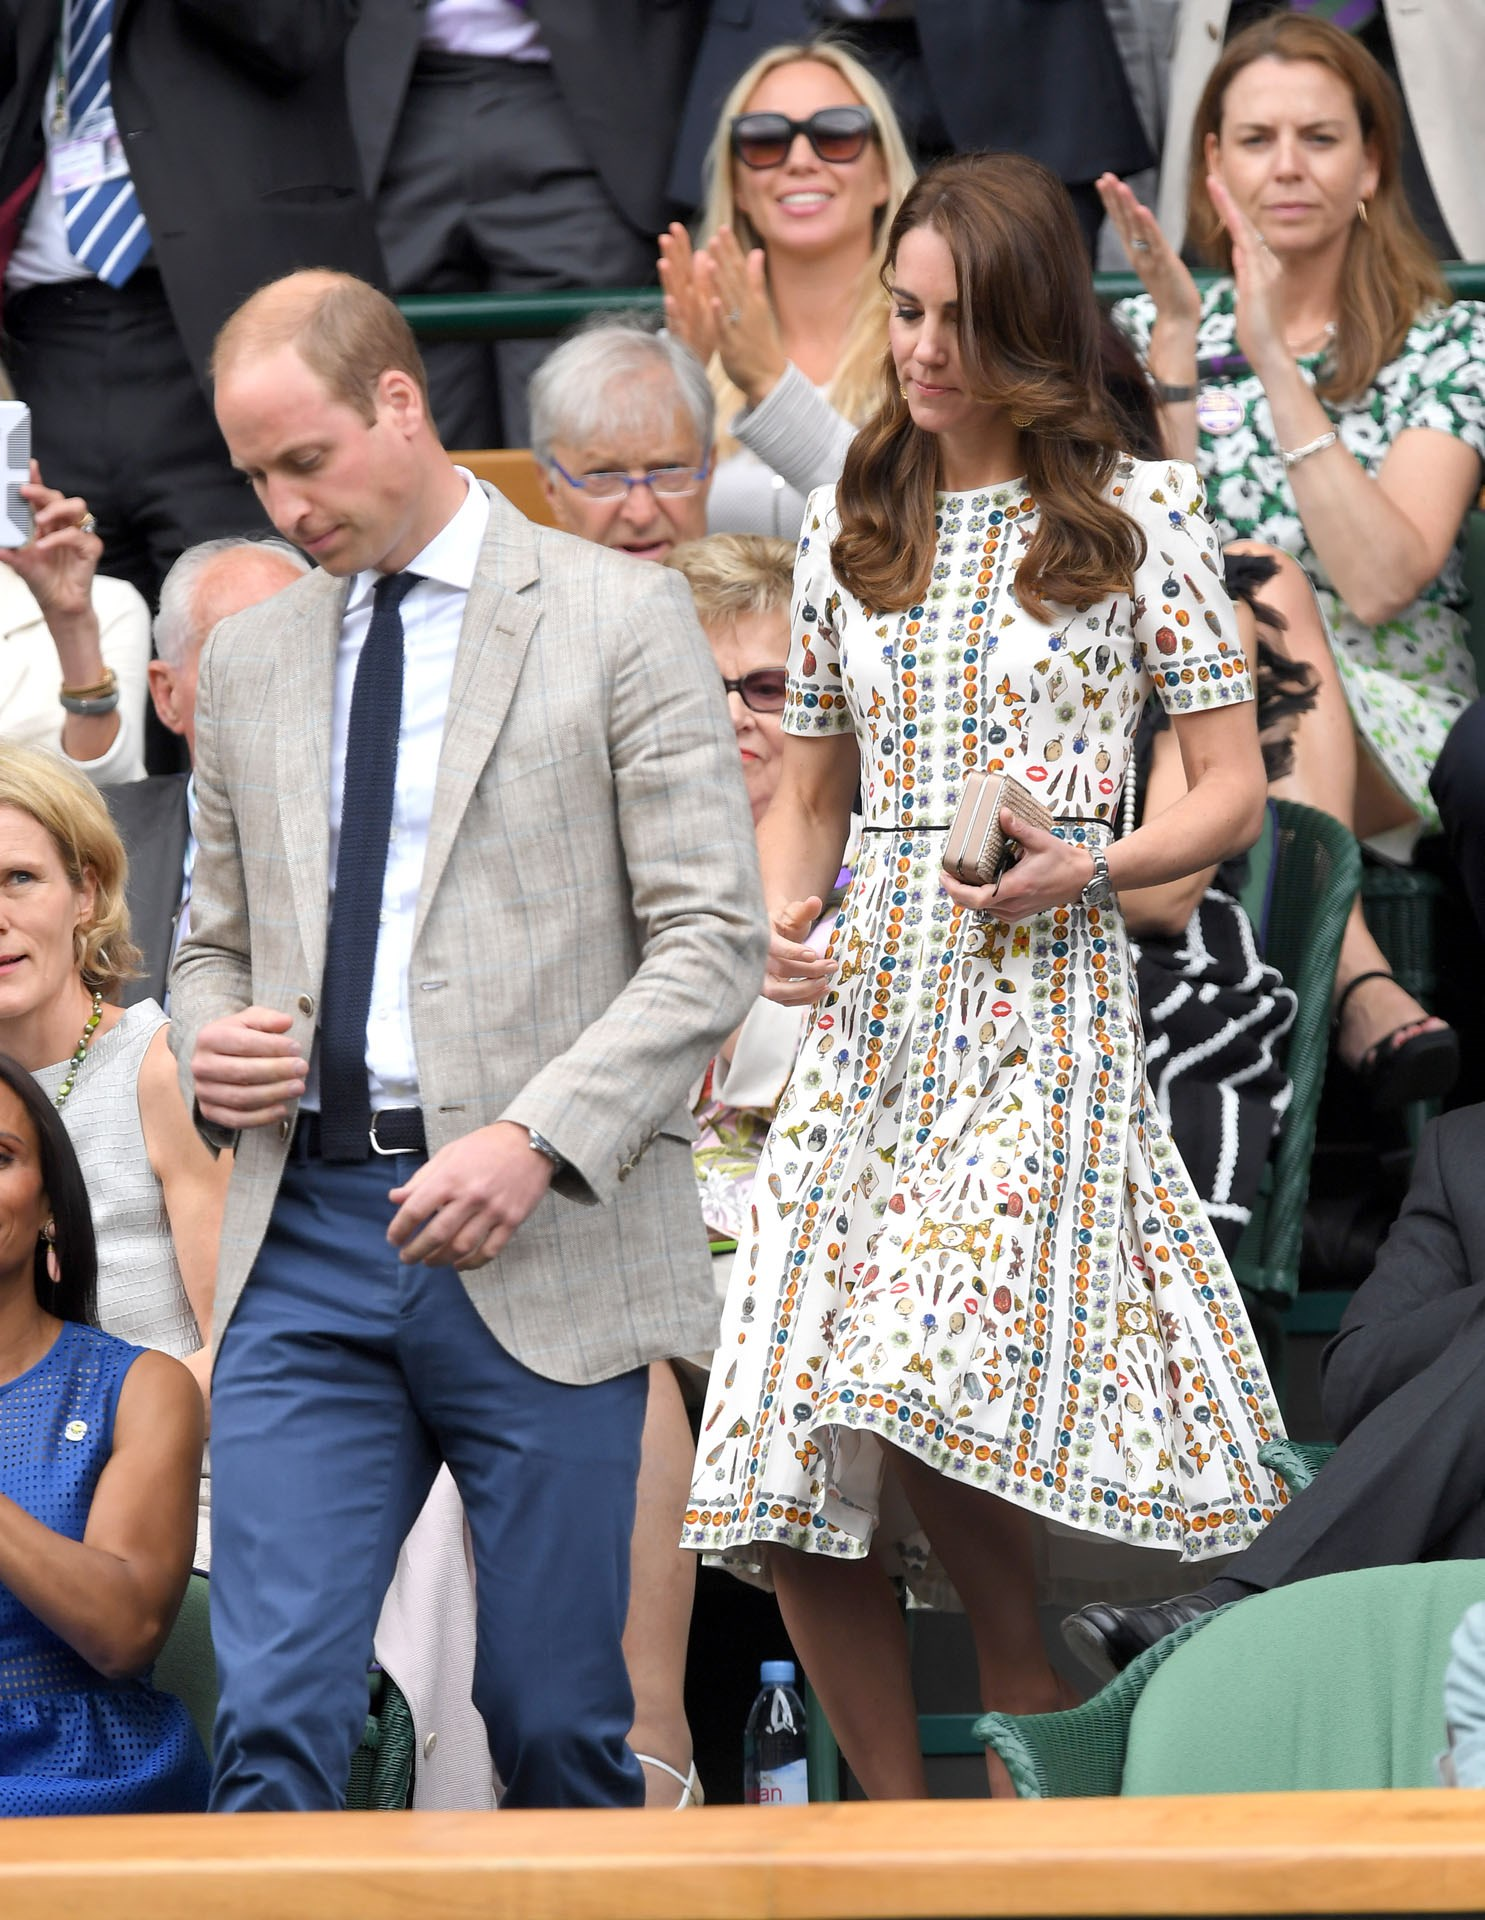 She's known for her love of sport, and can often be seen cheering on Andy Murray at Wimbledon, but this year the Duchess went all out with her style in a stunning $5,000 Alexander McQueen dress decorated with butterflies and jewels. She and William wore matching Ray Ban sunglasses – because the sun does occasionally make an appearance at Wimbledon!